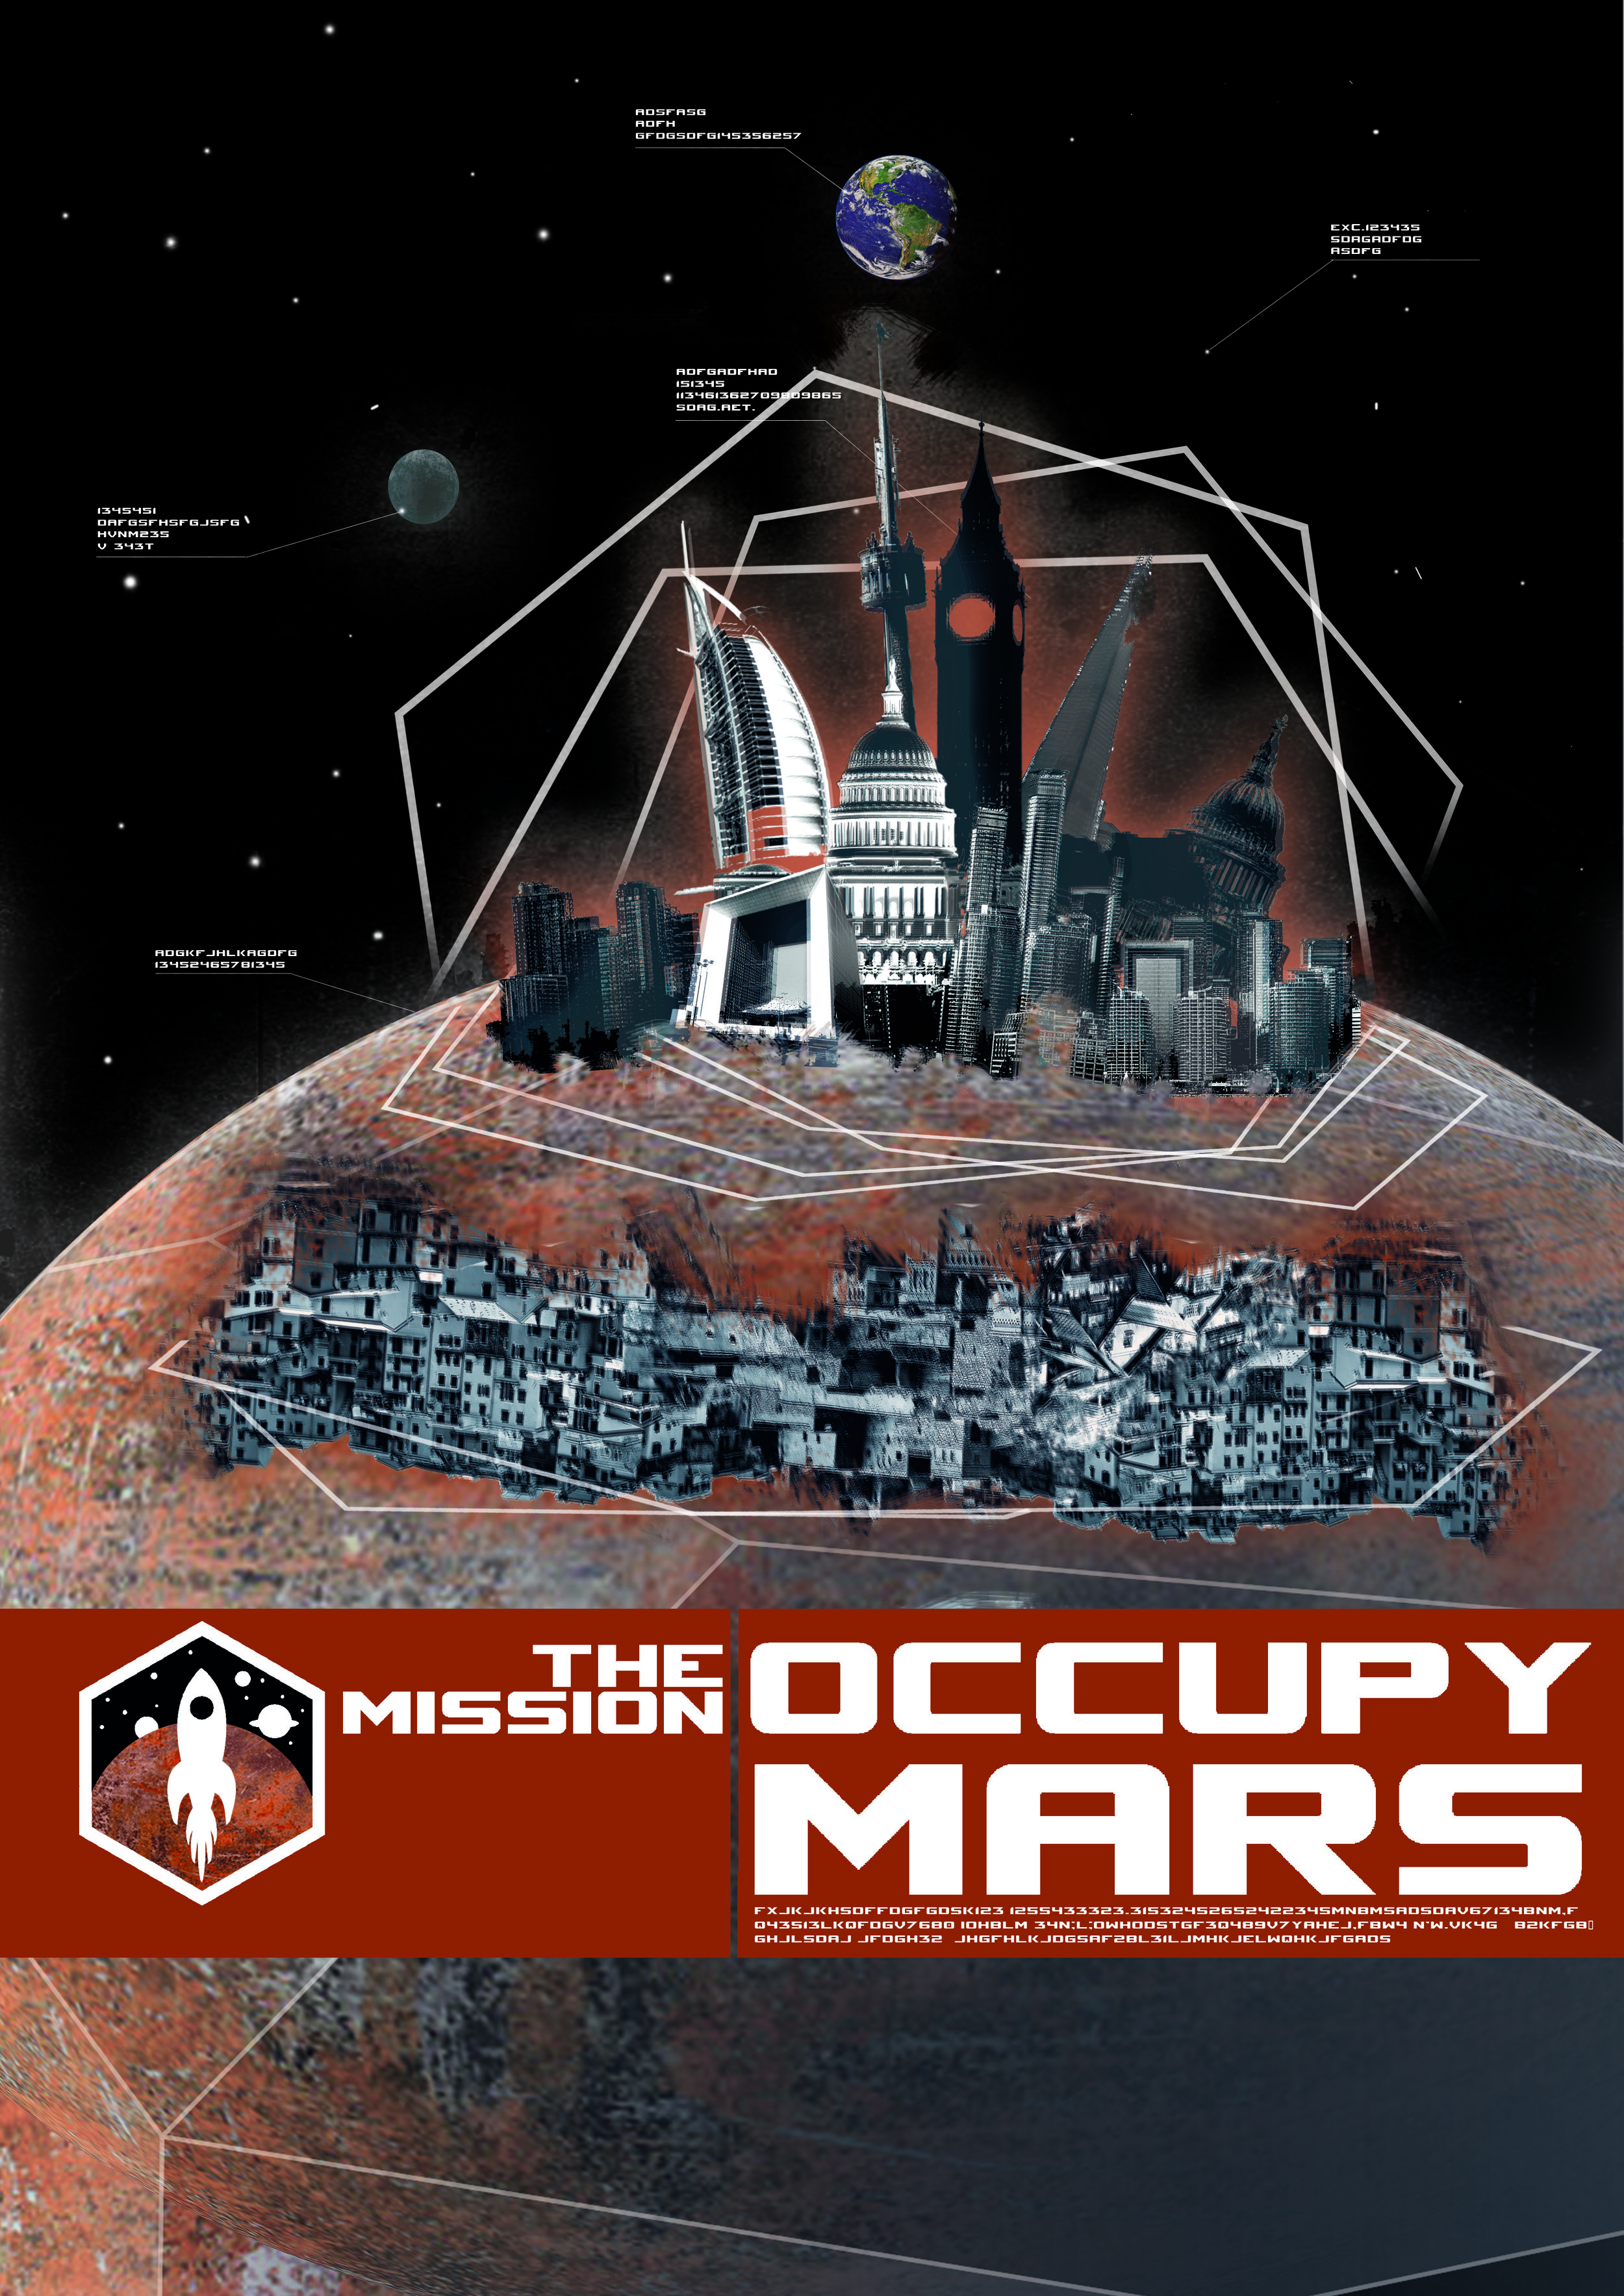 TheMission_OccupyMars_Hi-Res (1).jpg